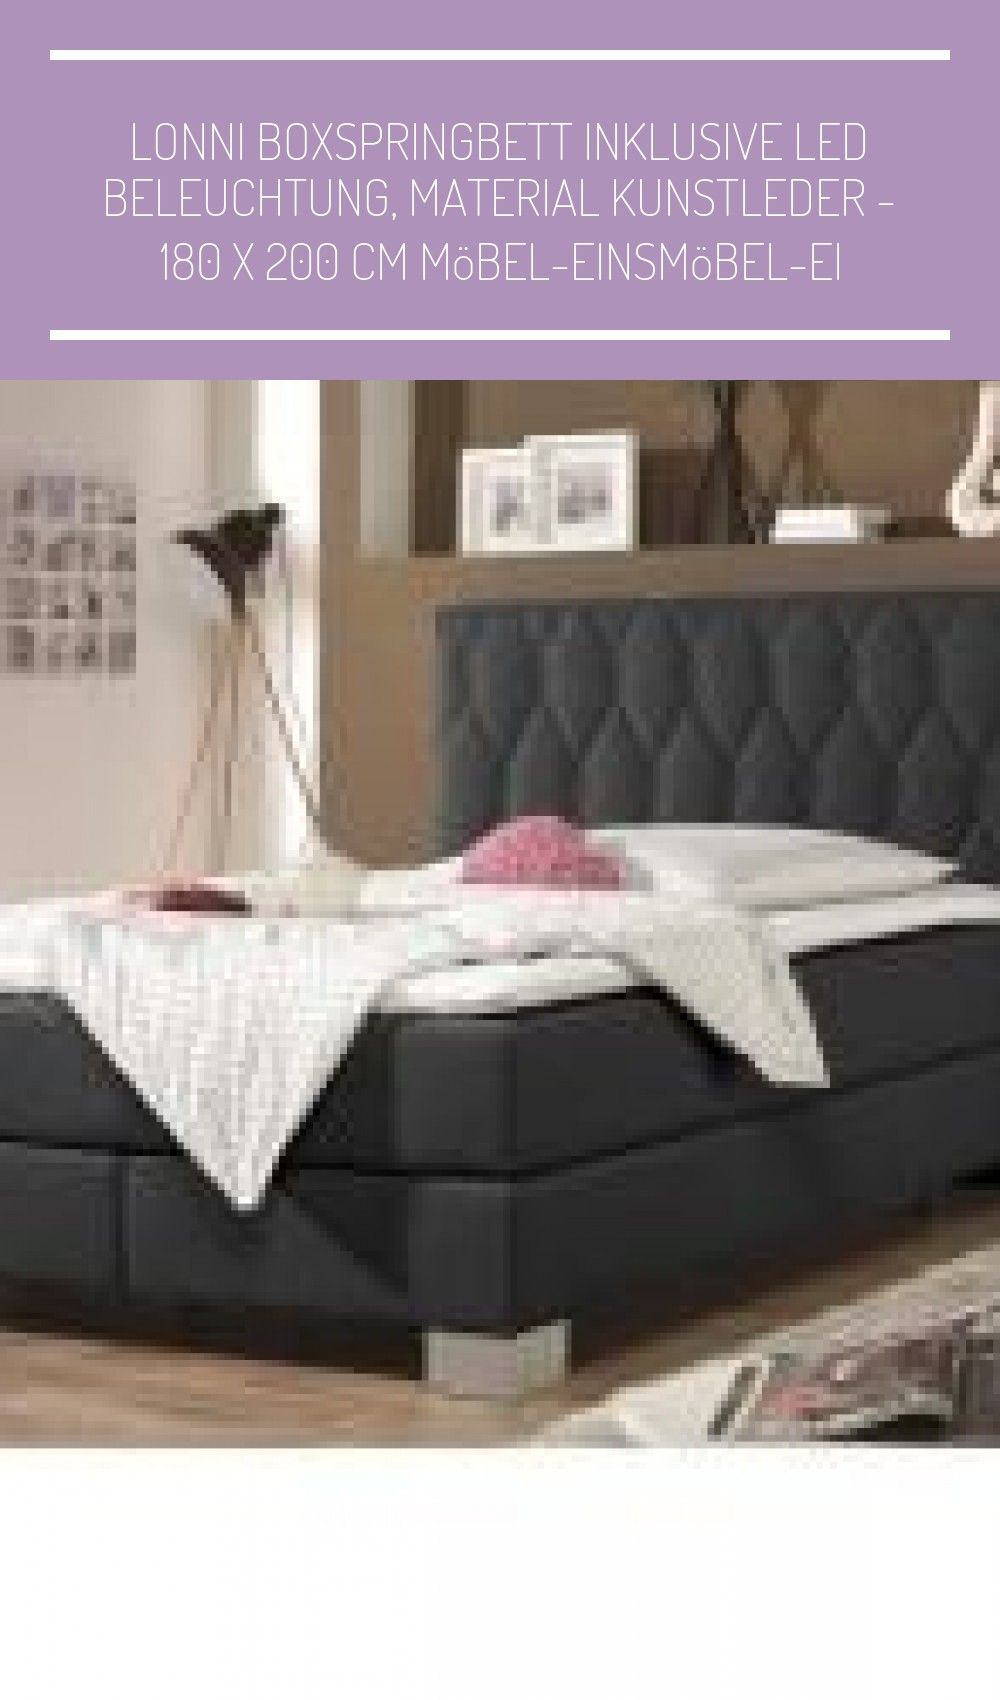 Lonni Boxspringbett Inklusive In 2020 Mattress Bed Home Decor